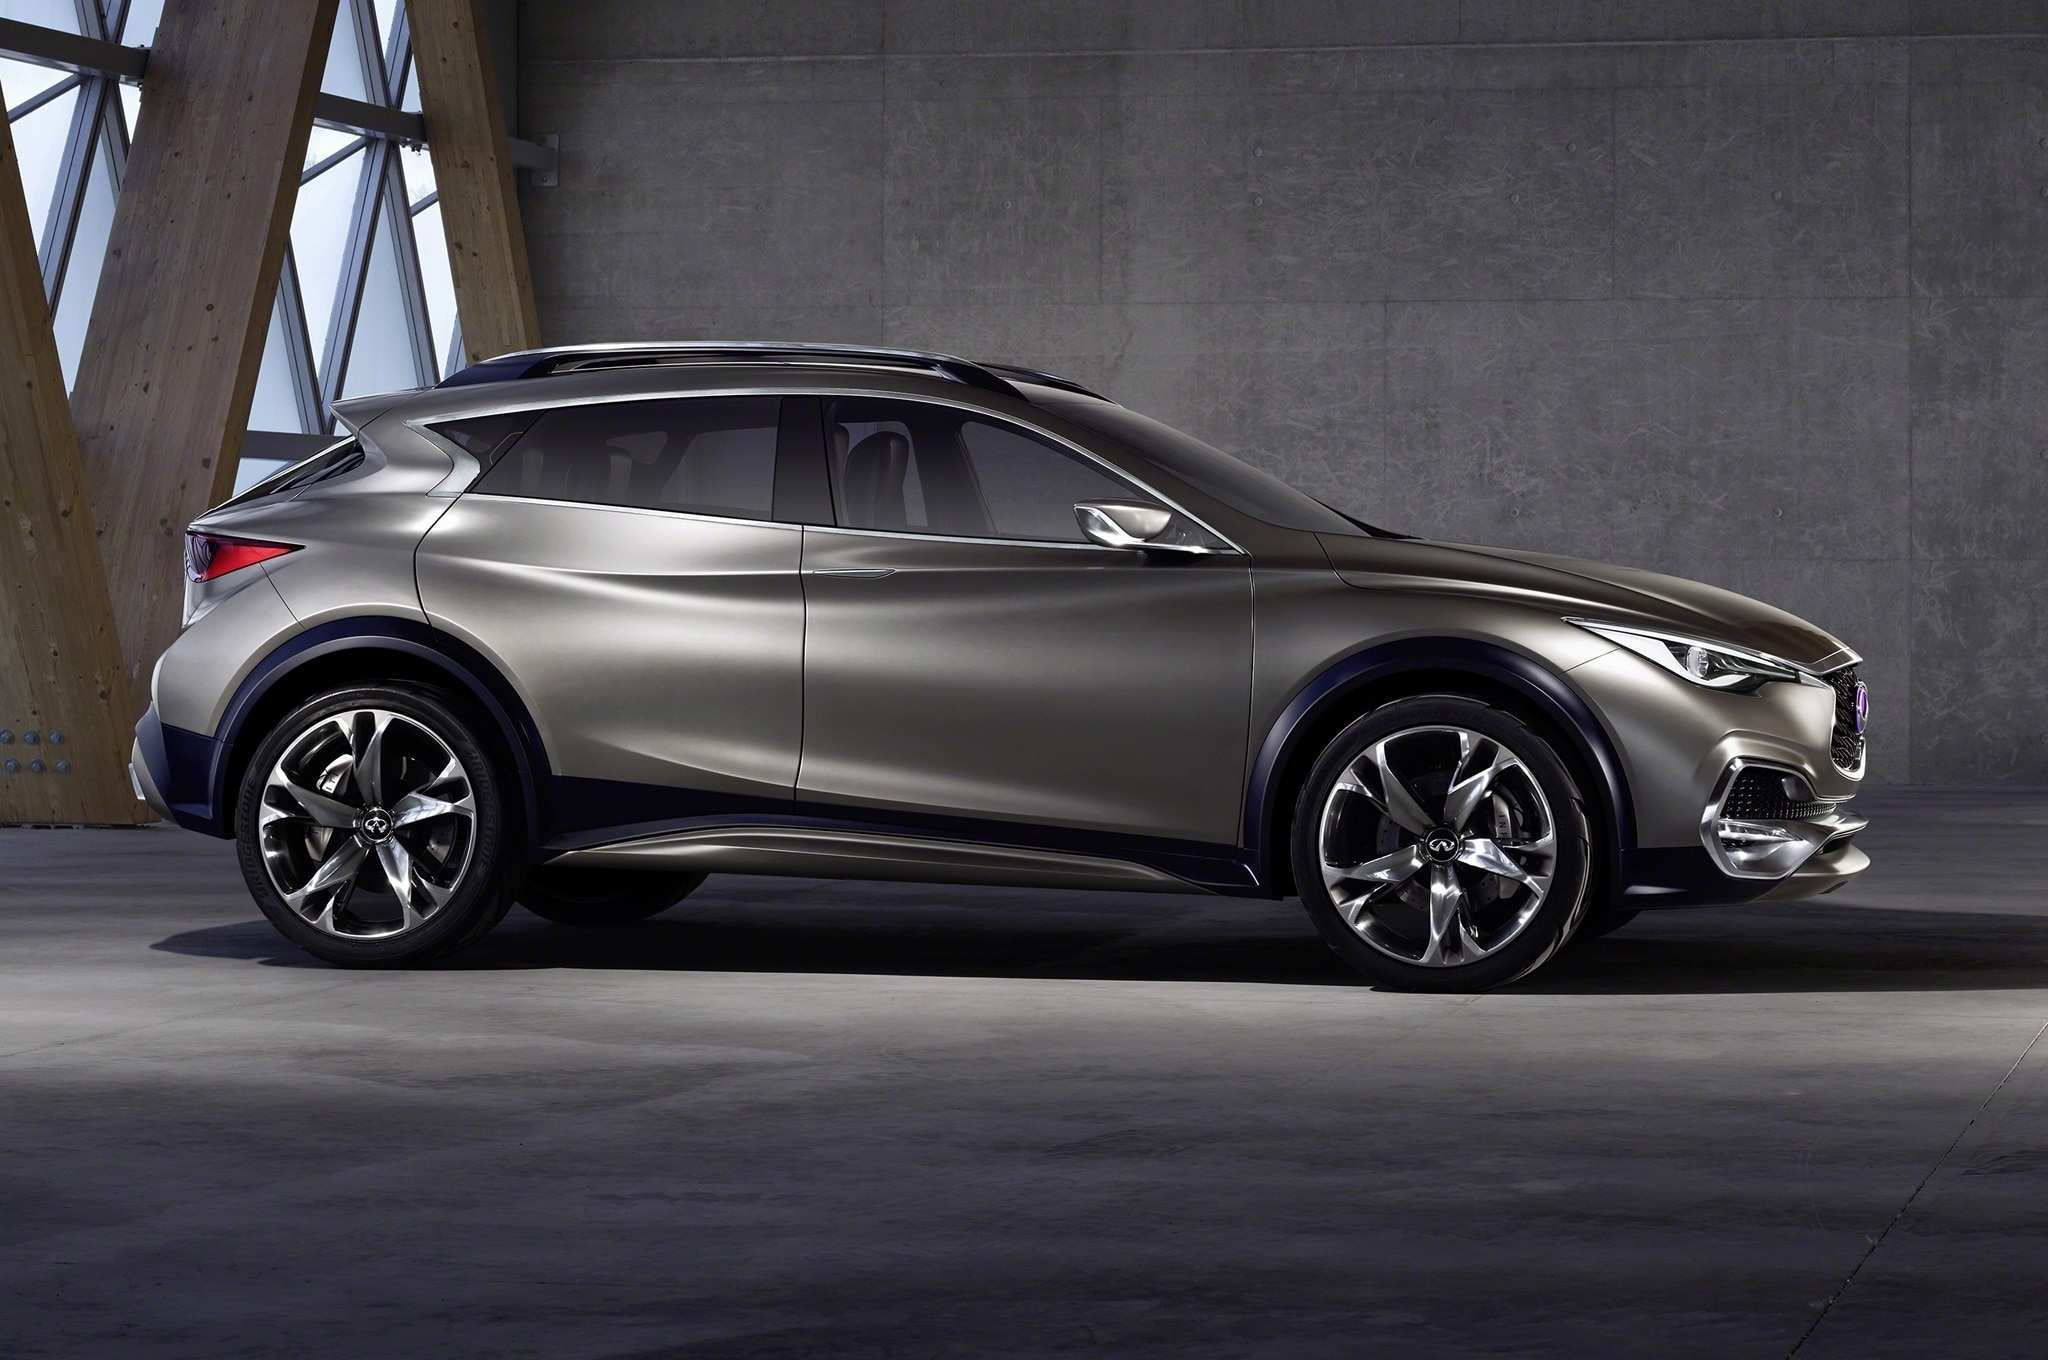 70 The Best 2020 Infiniti Qx70 Release Date Ratings